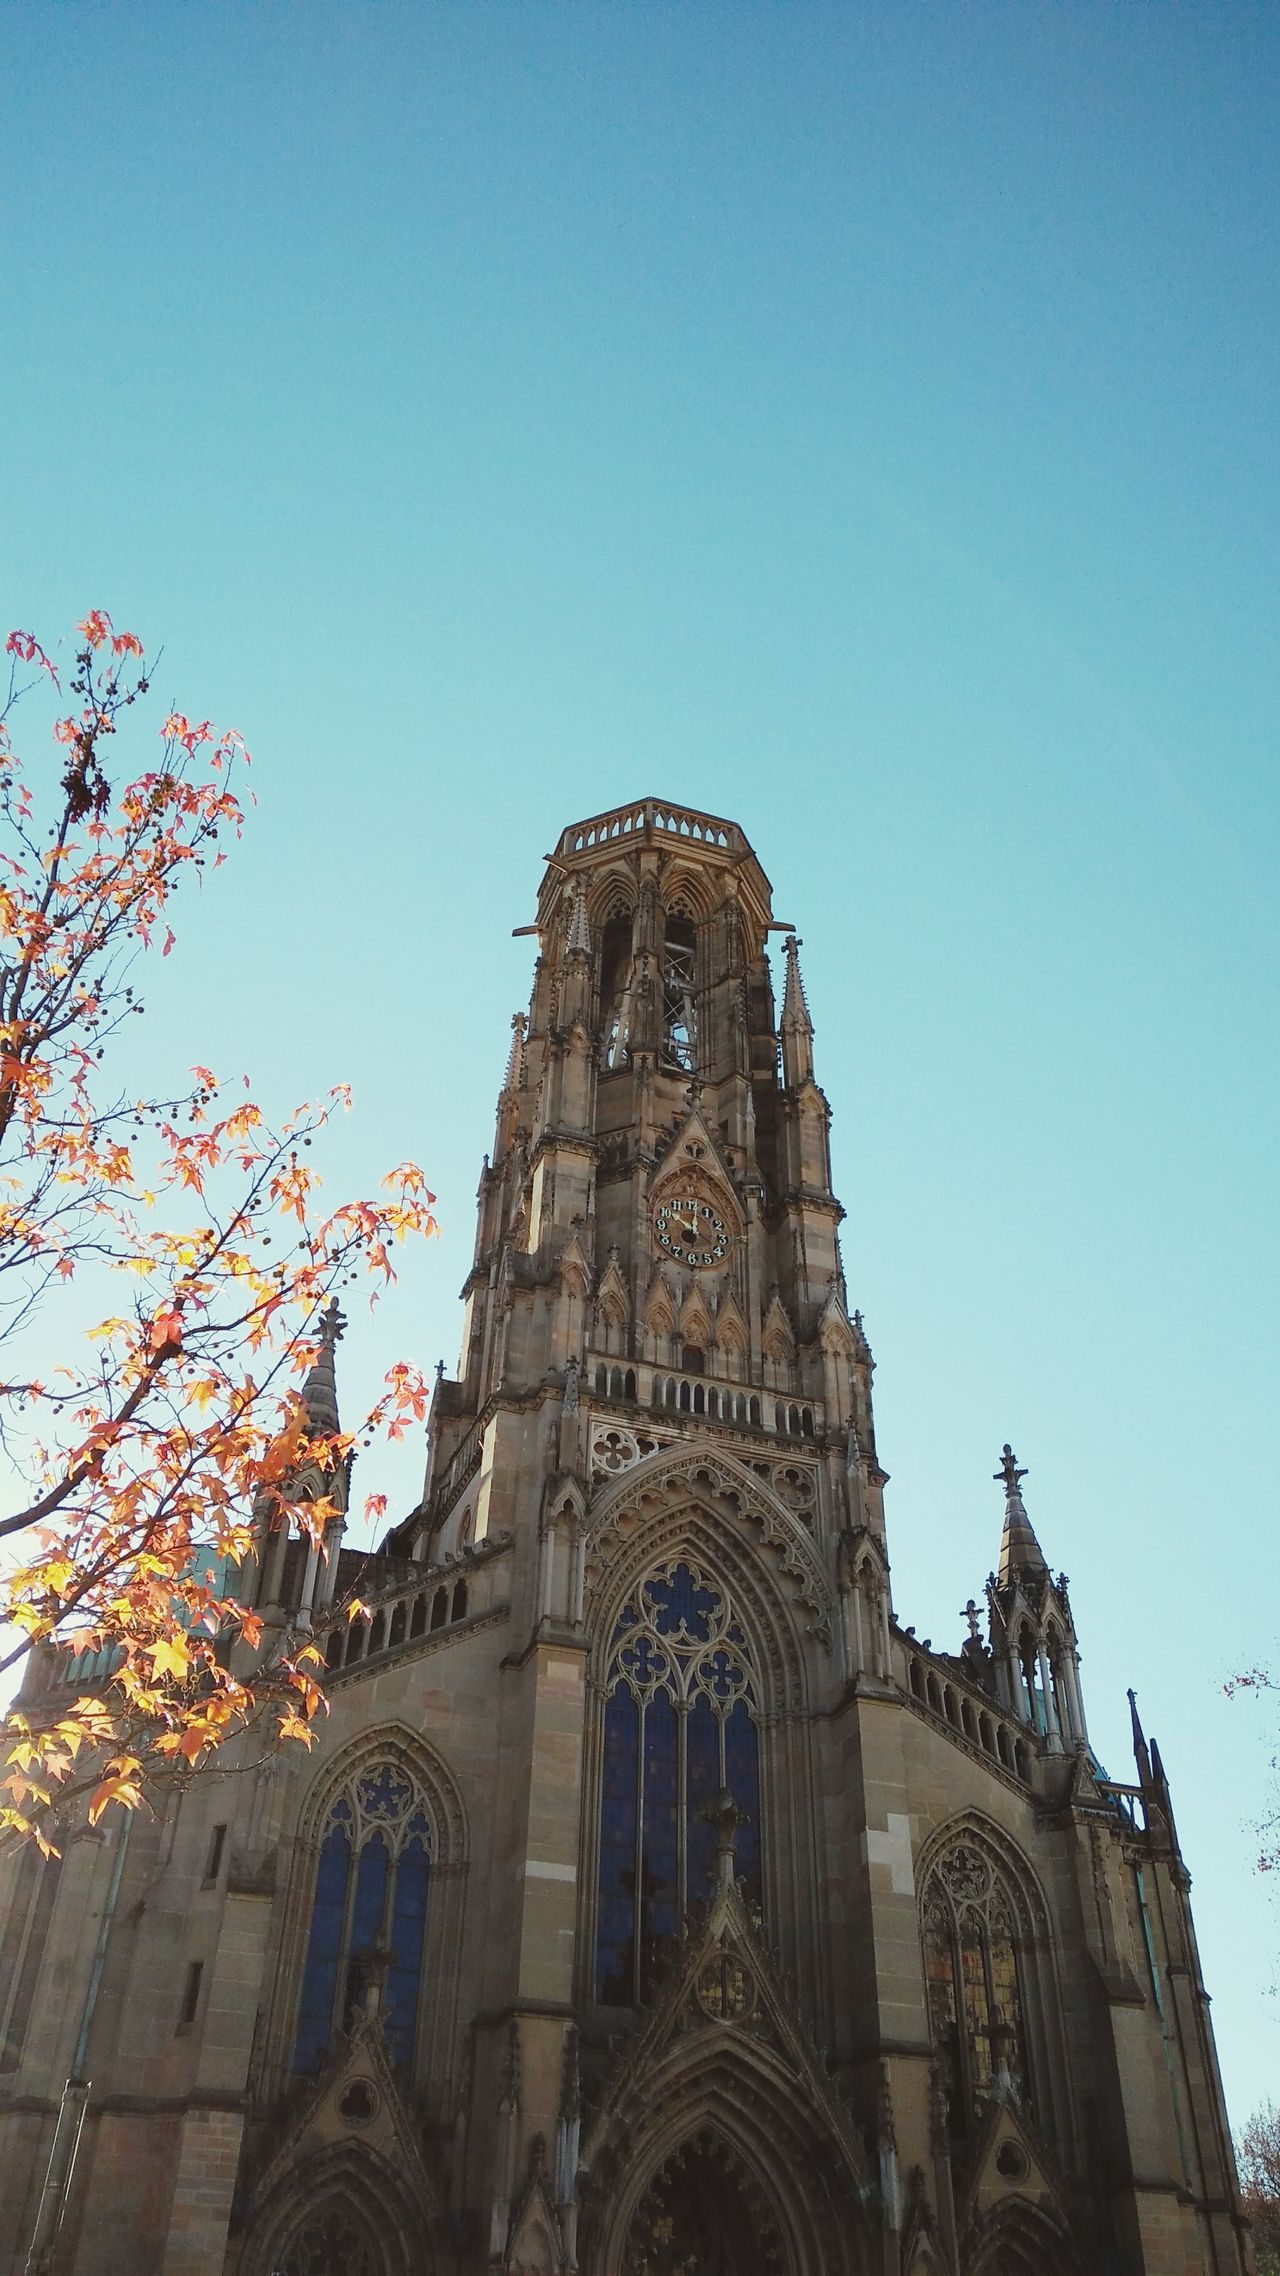 Unknown Church in Fall. · Stuttgart Germany Churches Religion Spirituality Architecture City Life Culture Low Angle View Up Trees Branches Leaves Blue Sky